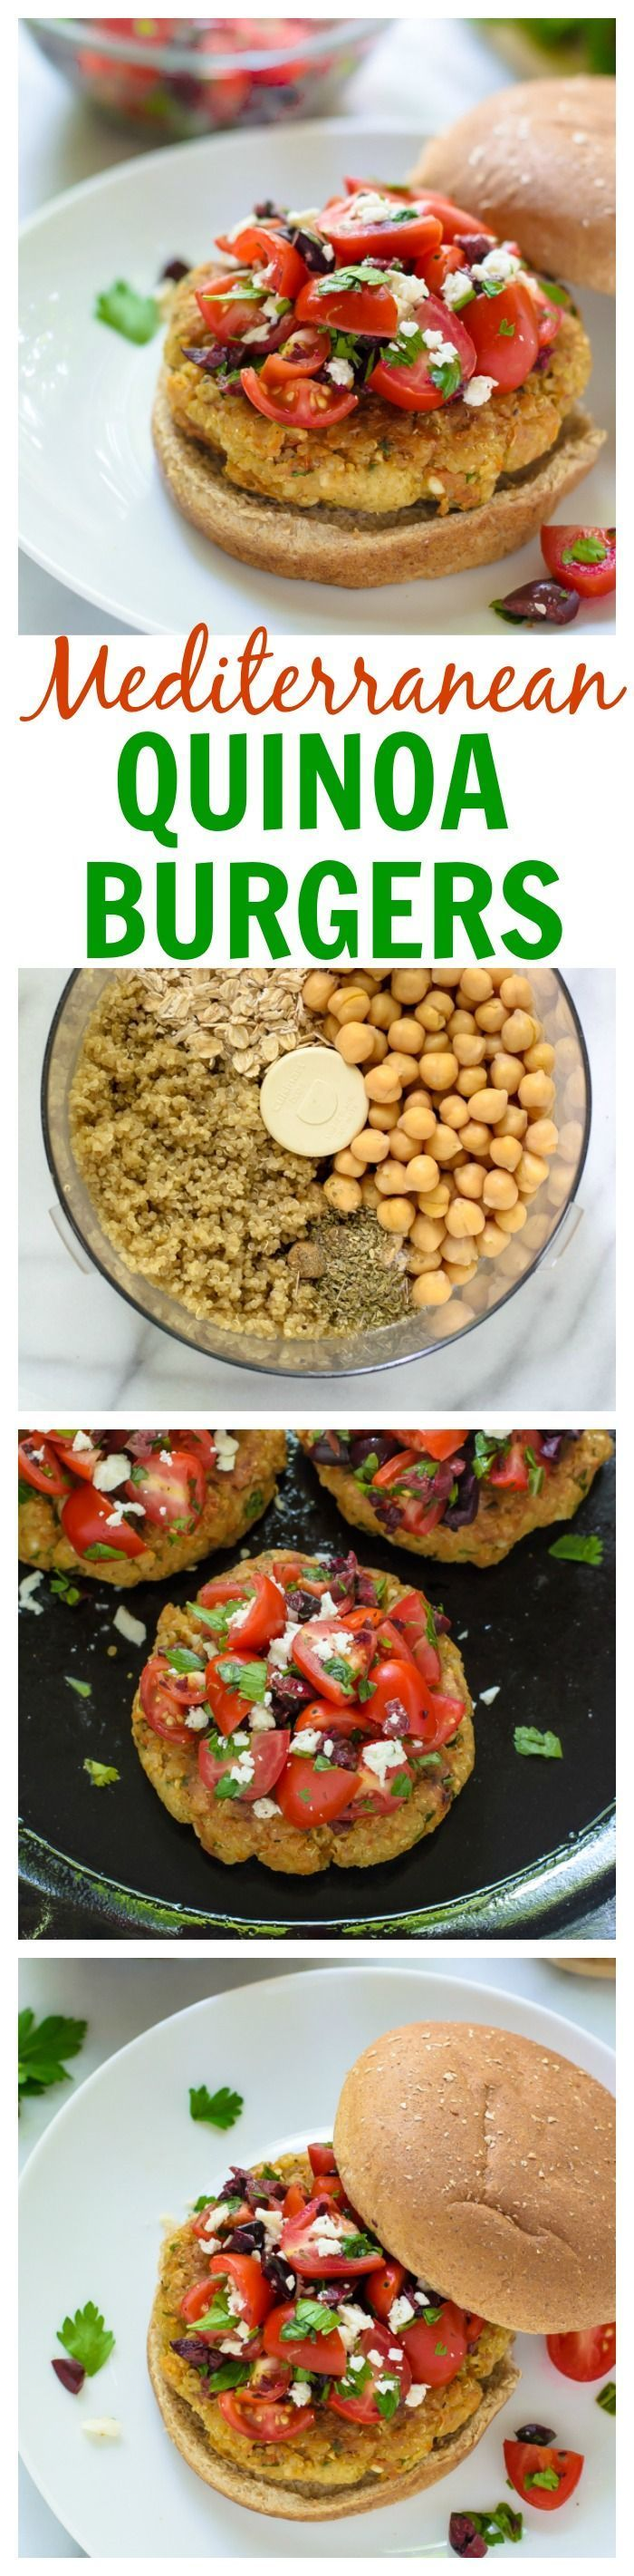 Feta Stuffed Mediterranean Quinoa Burgers. Crispy, fresh, and great leftover too!